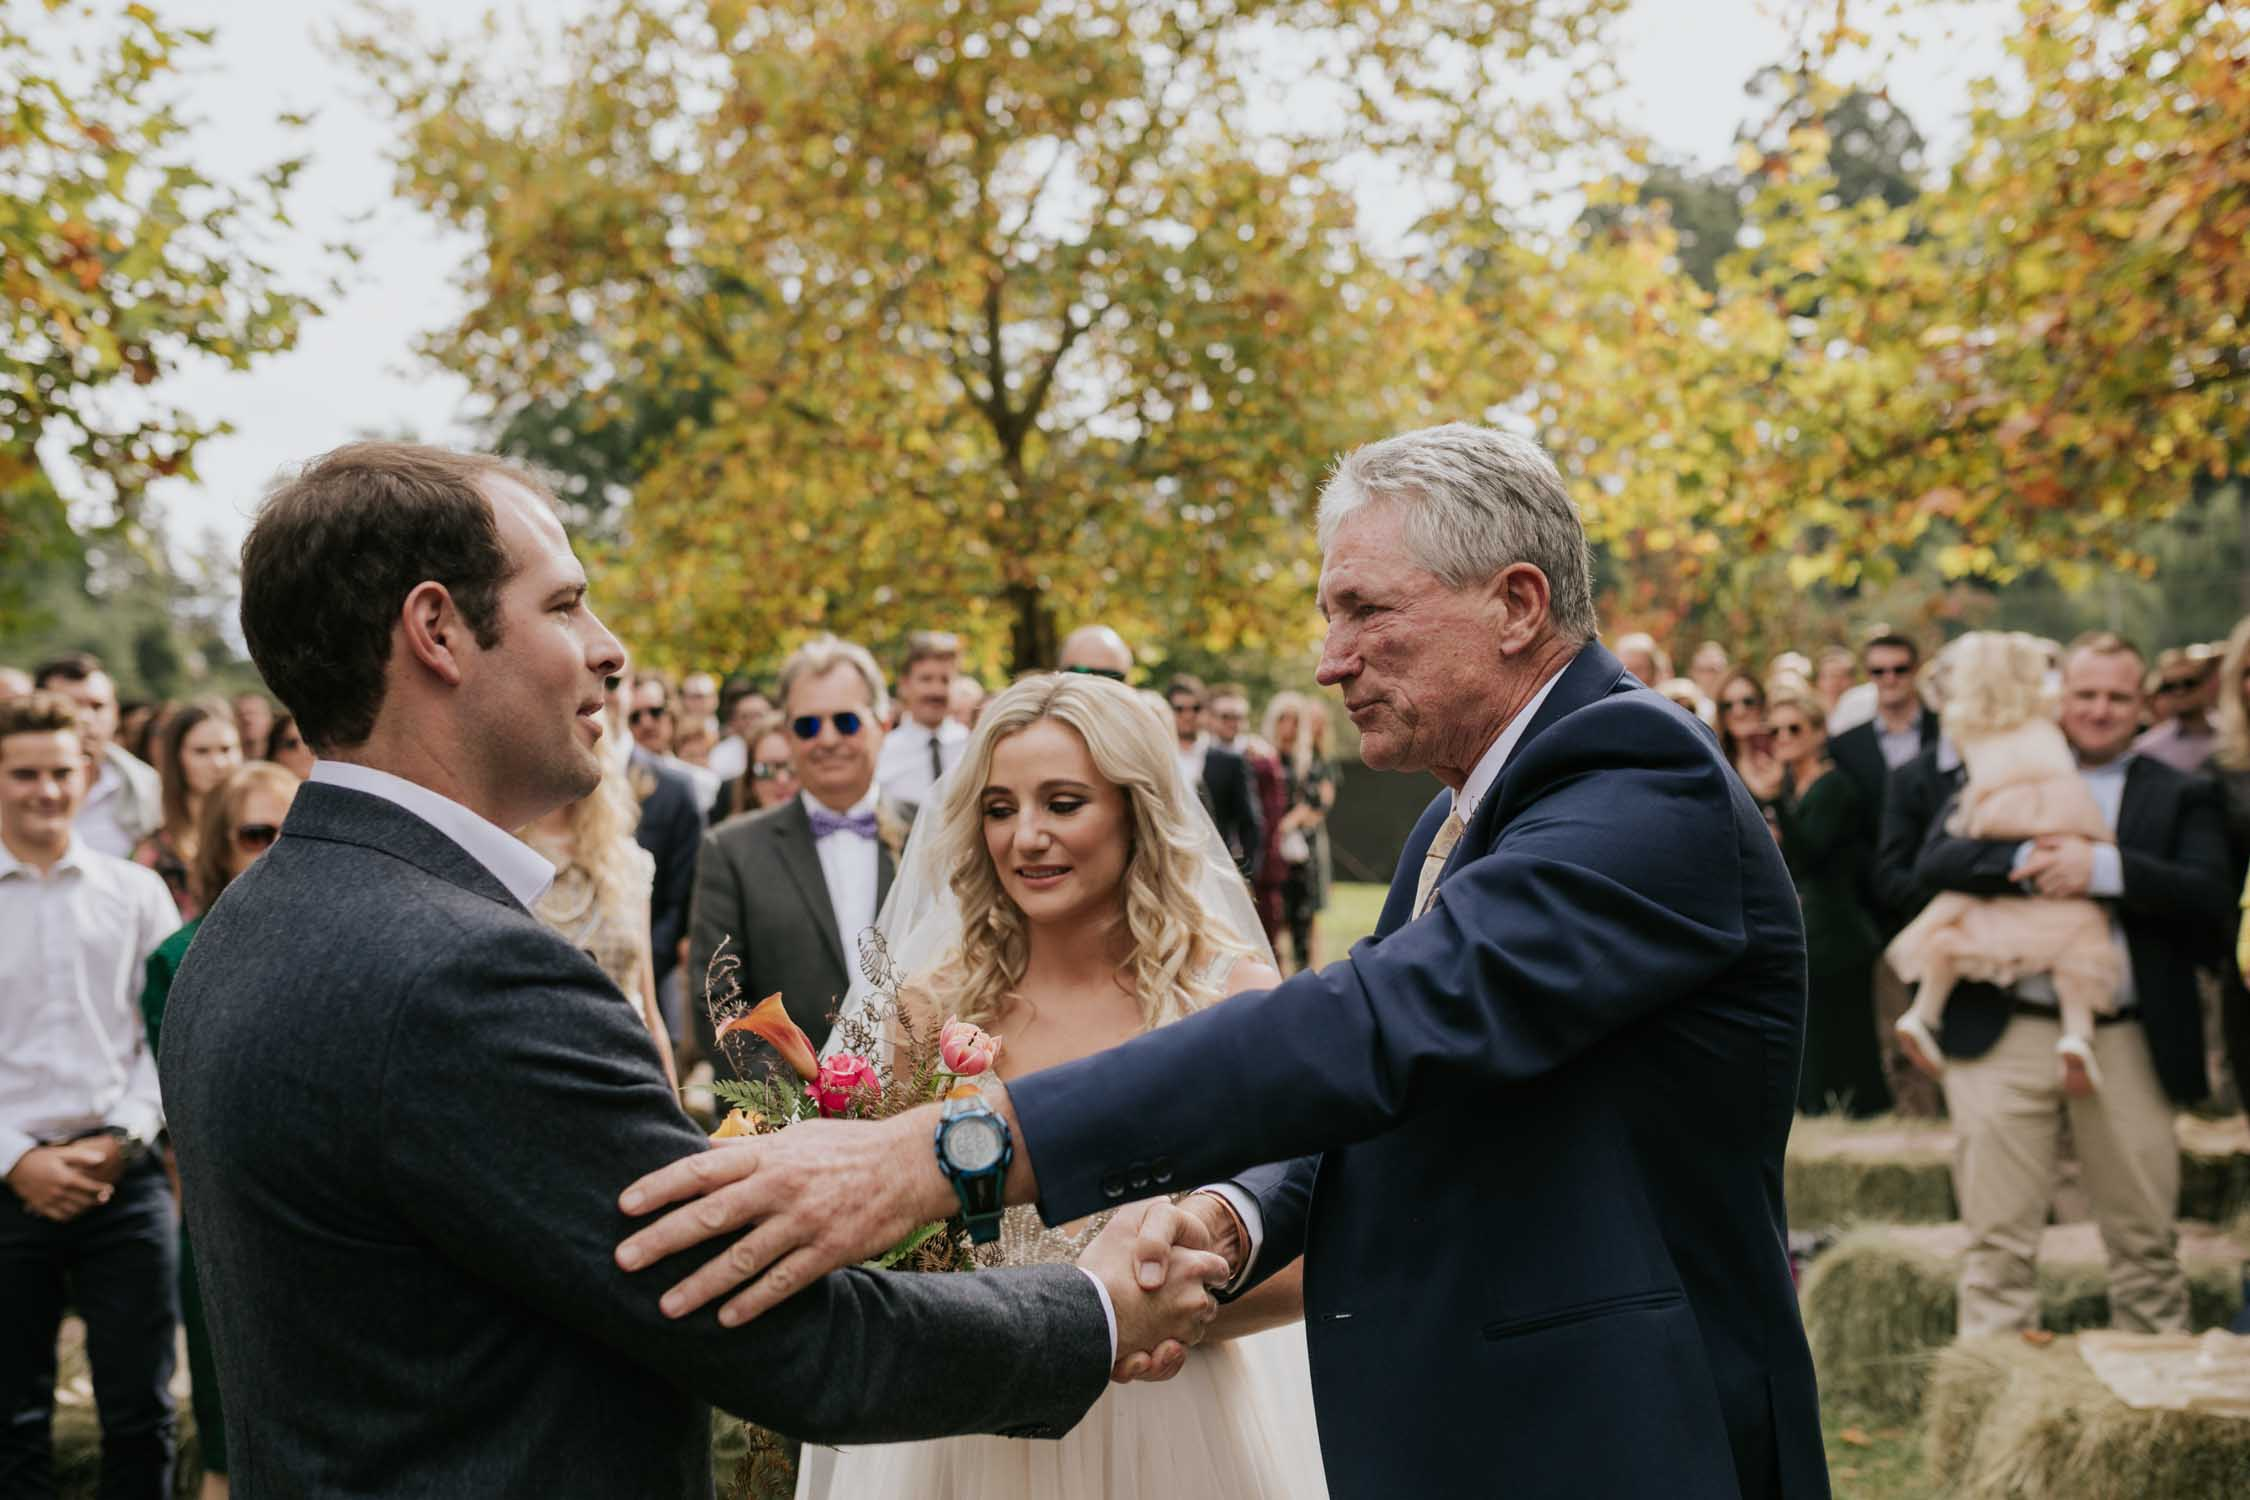 Bride's father embracing and holding onto groom's arm as he hands over his daughter to the groom at the top of the aisle. Very emotional wedding moment.